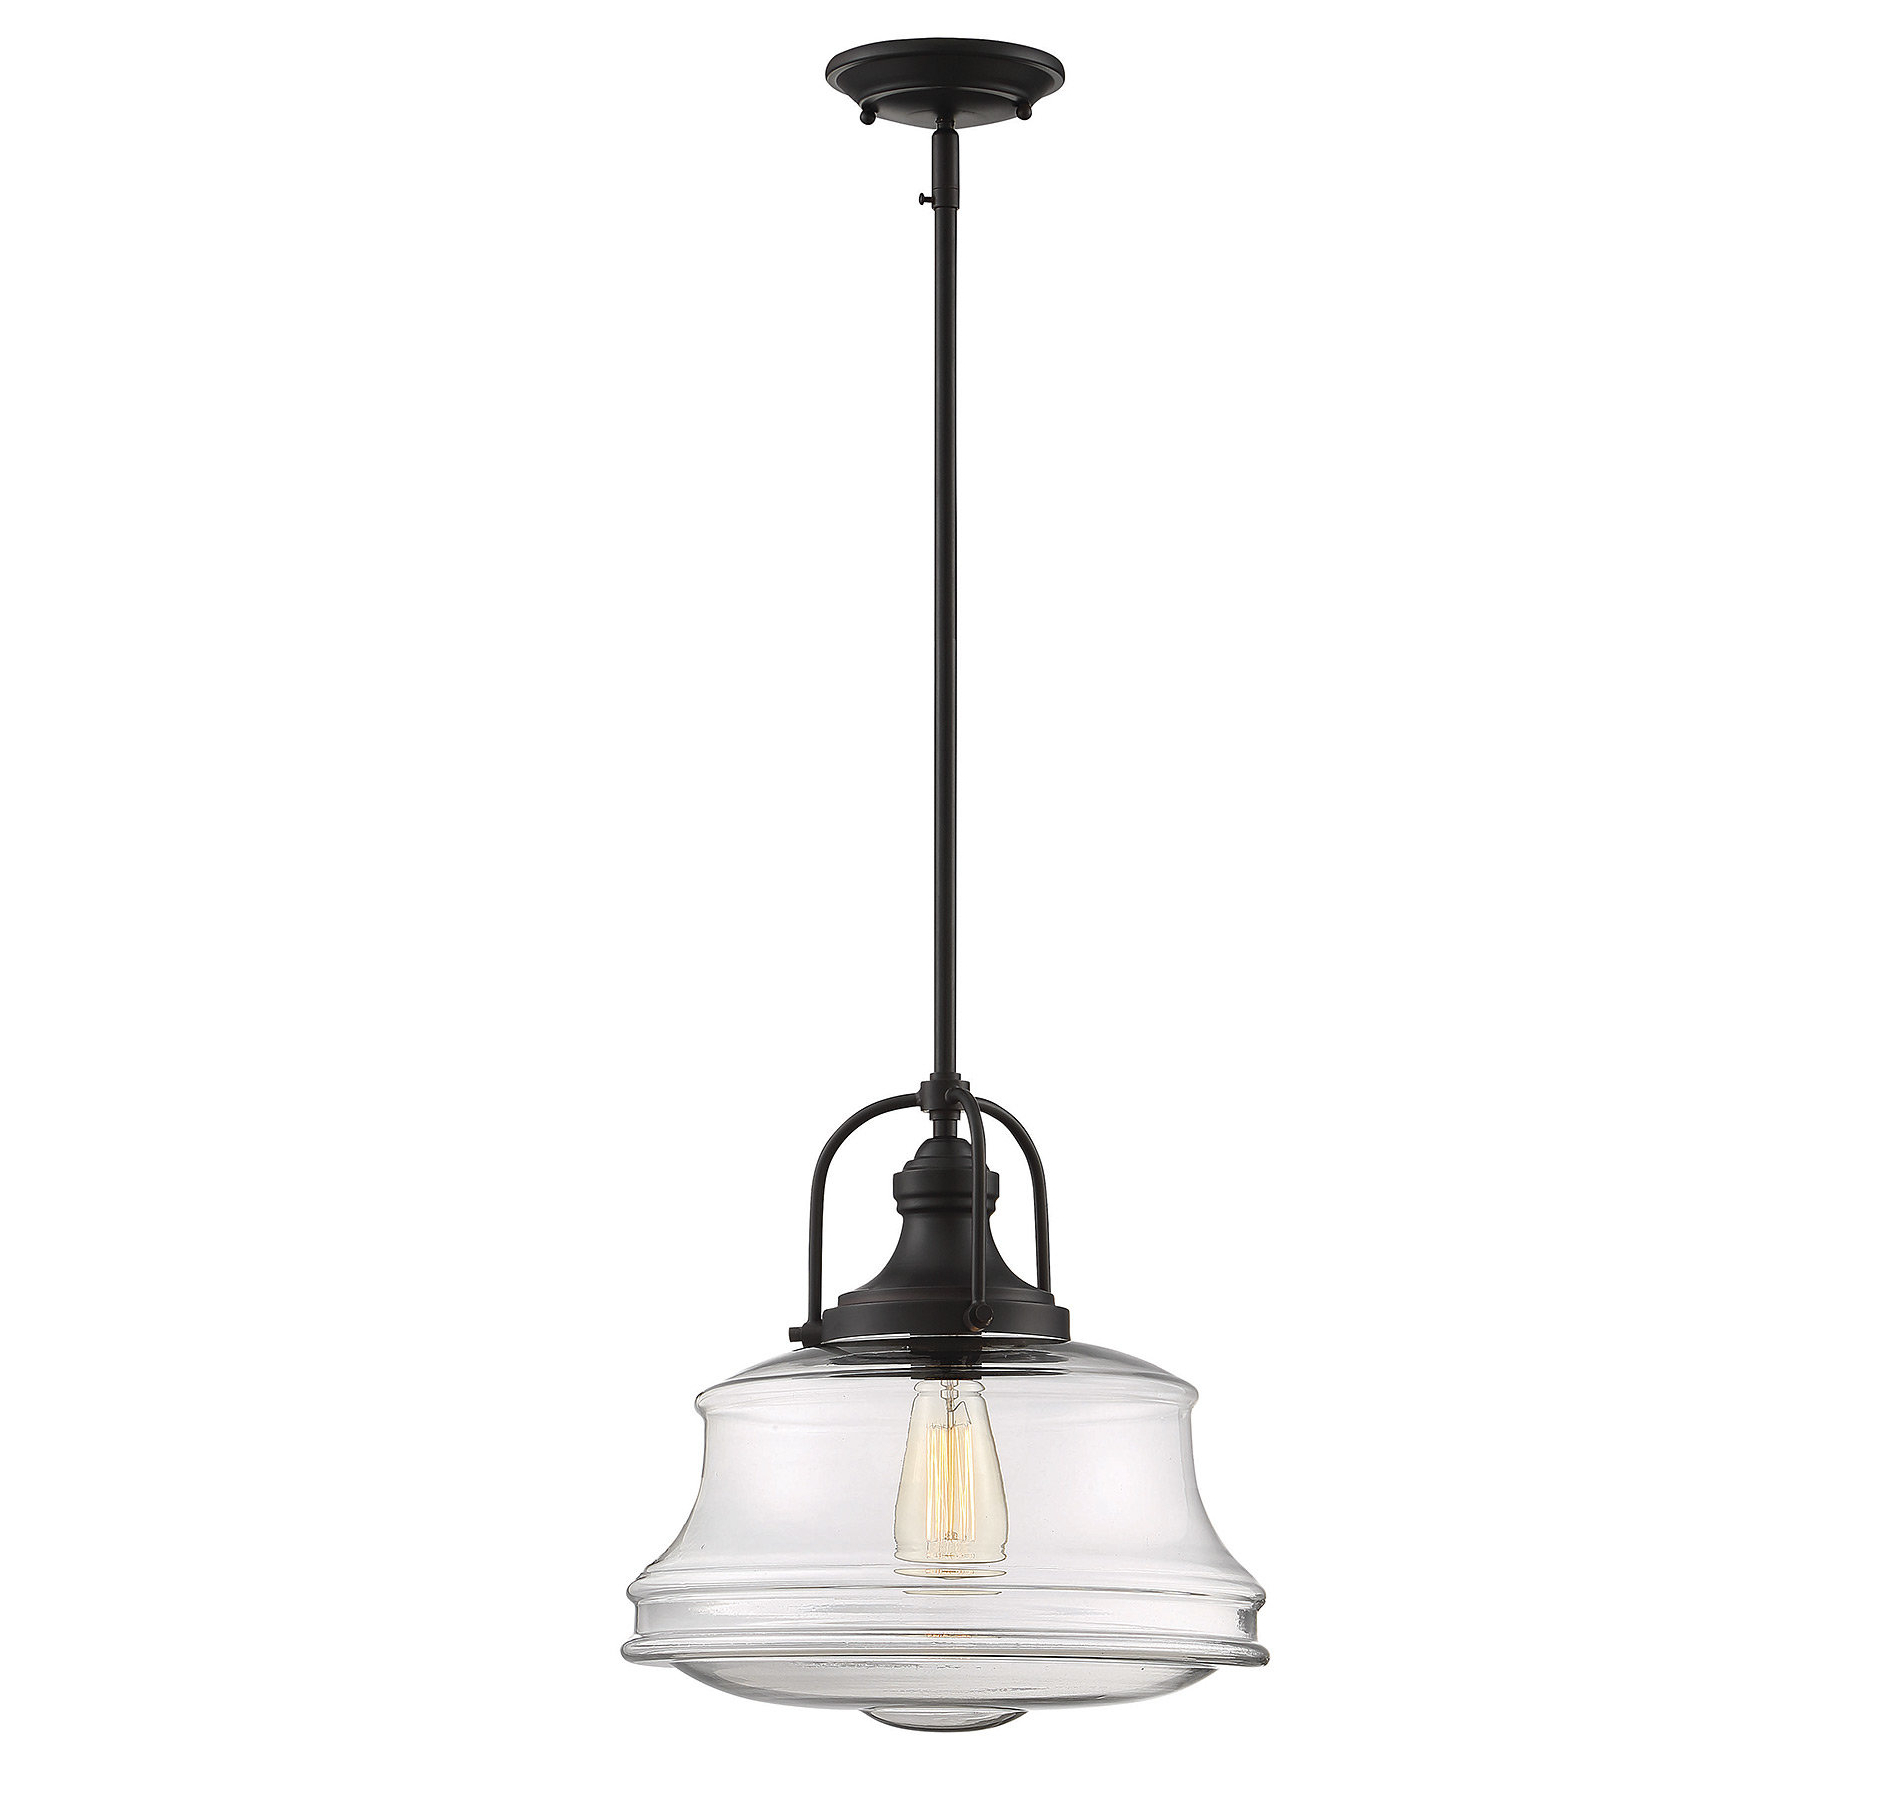 Recent Nadine 1 Light Single Schoolhouse Pendant For 1 Light Single Schoolhouse Pendants (View 18 of 20)